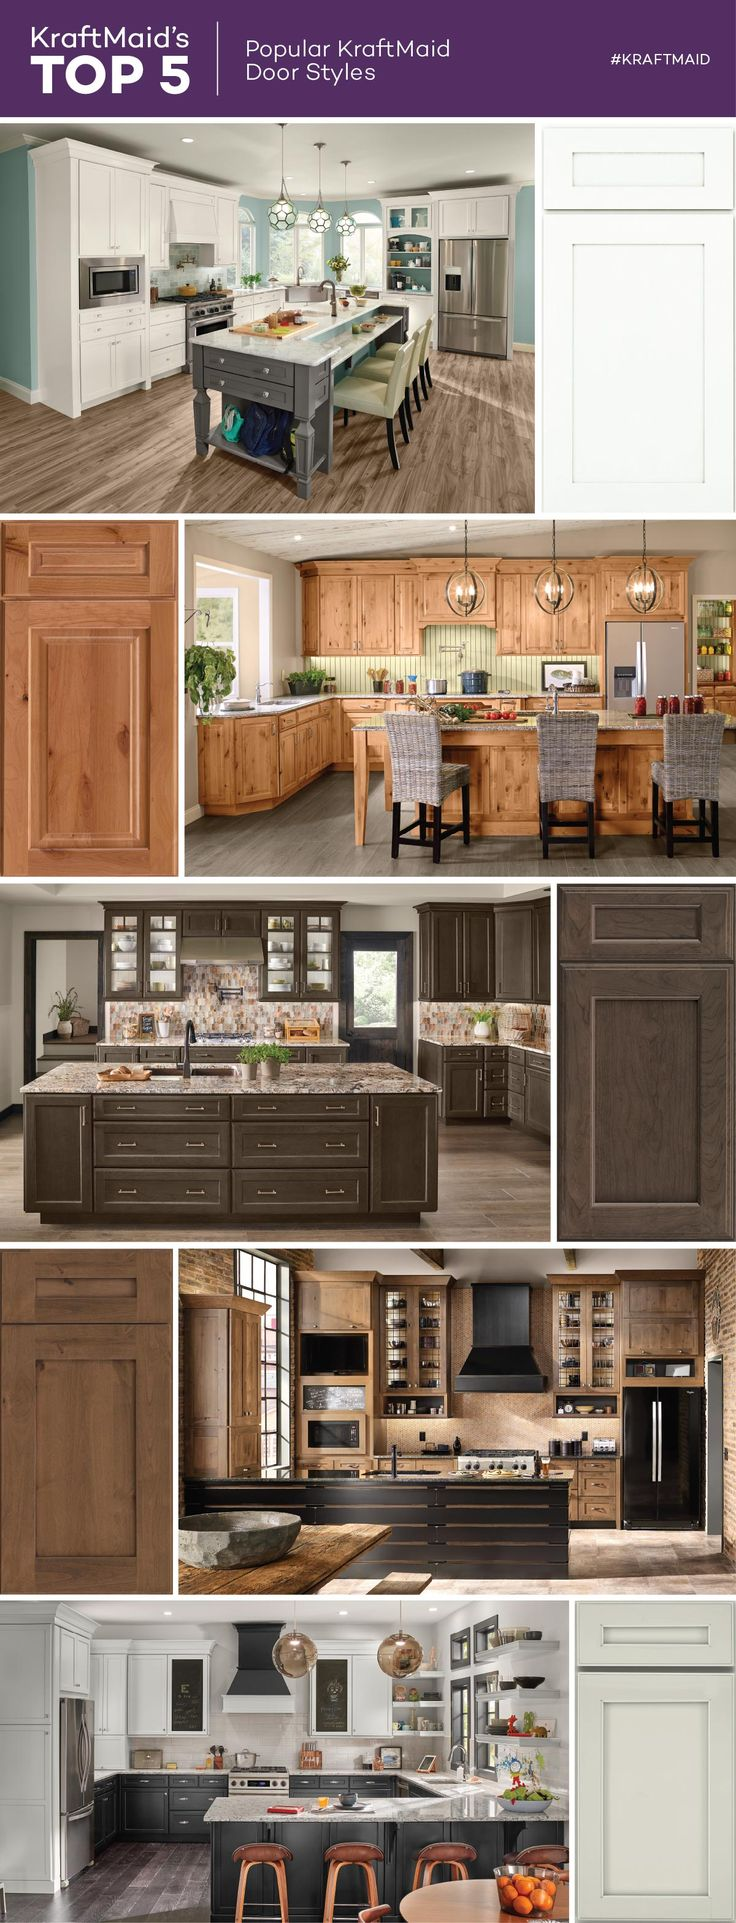 ... The Most Popular KraftMaid® Door Styles. Not Only Are Shaker Cabinet  Doors Timeless In Style, But They Also Can Be Modified With Handles Or  Hardware To ...